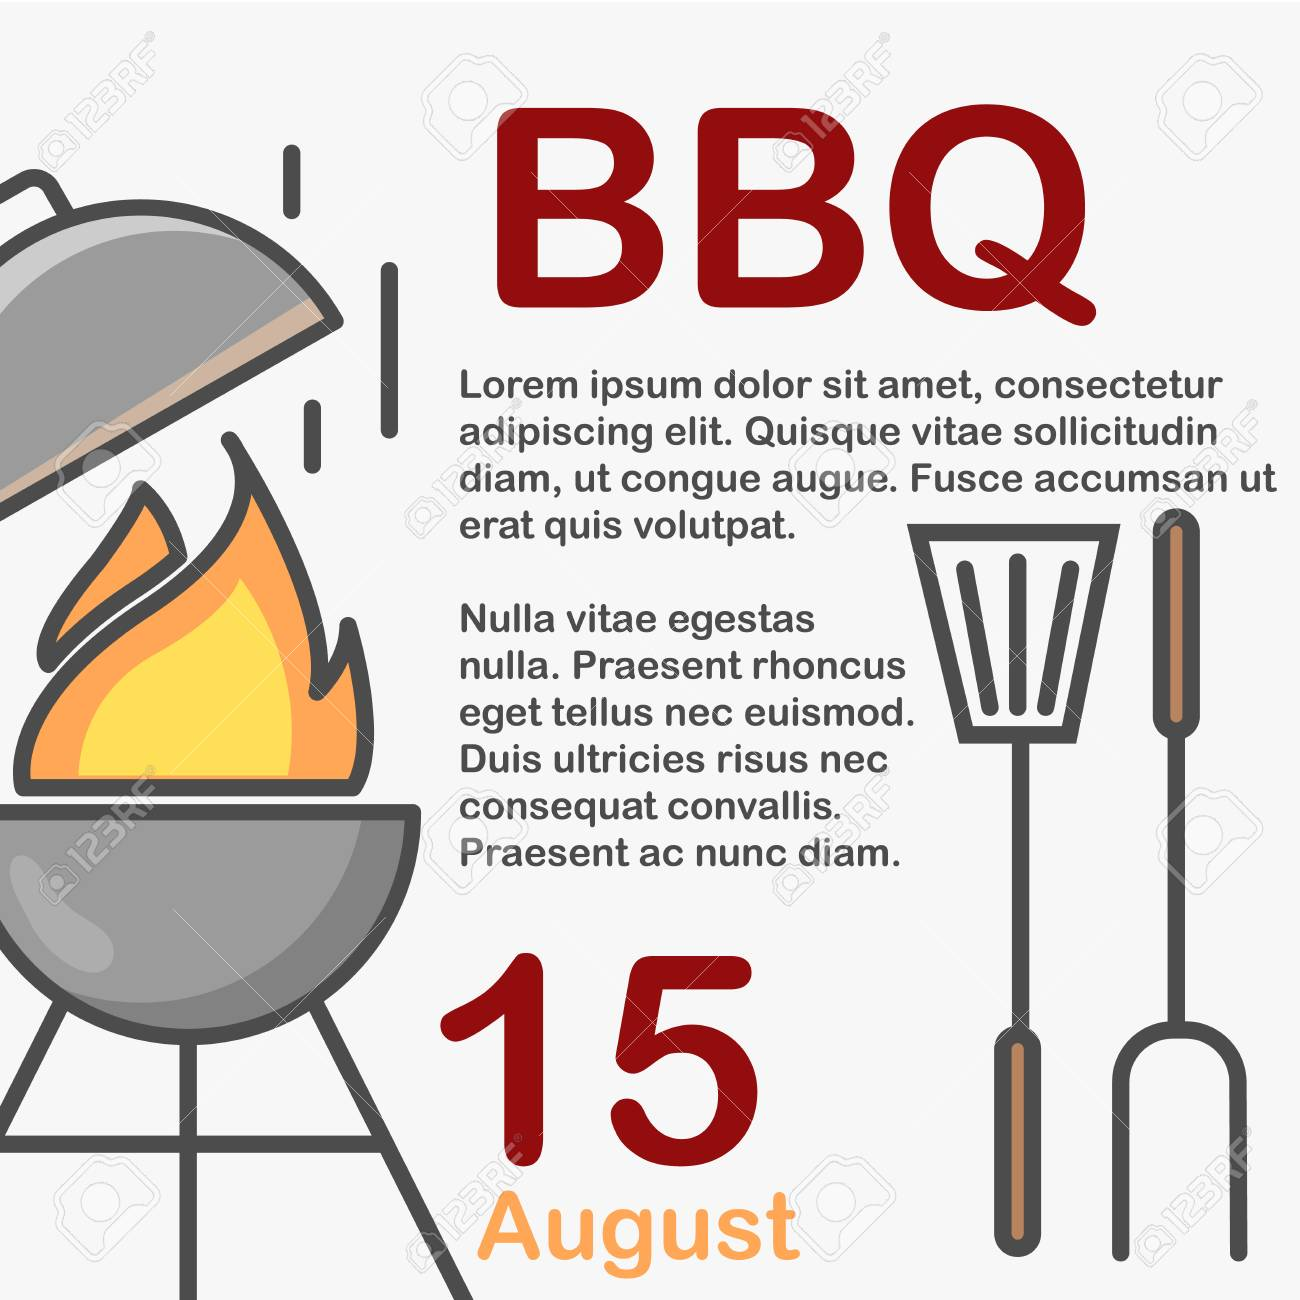 bbq invitation utensils on white background and sample text